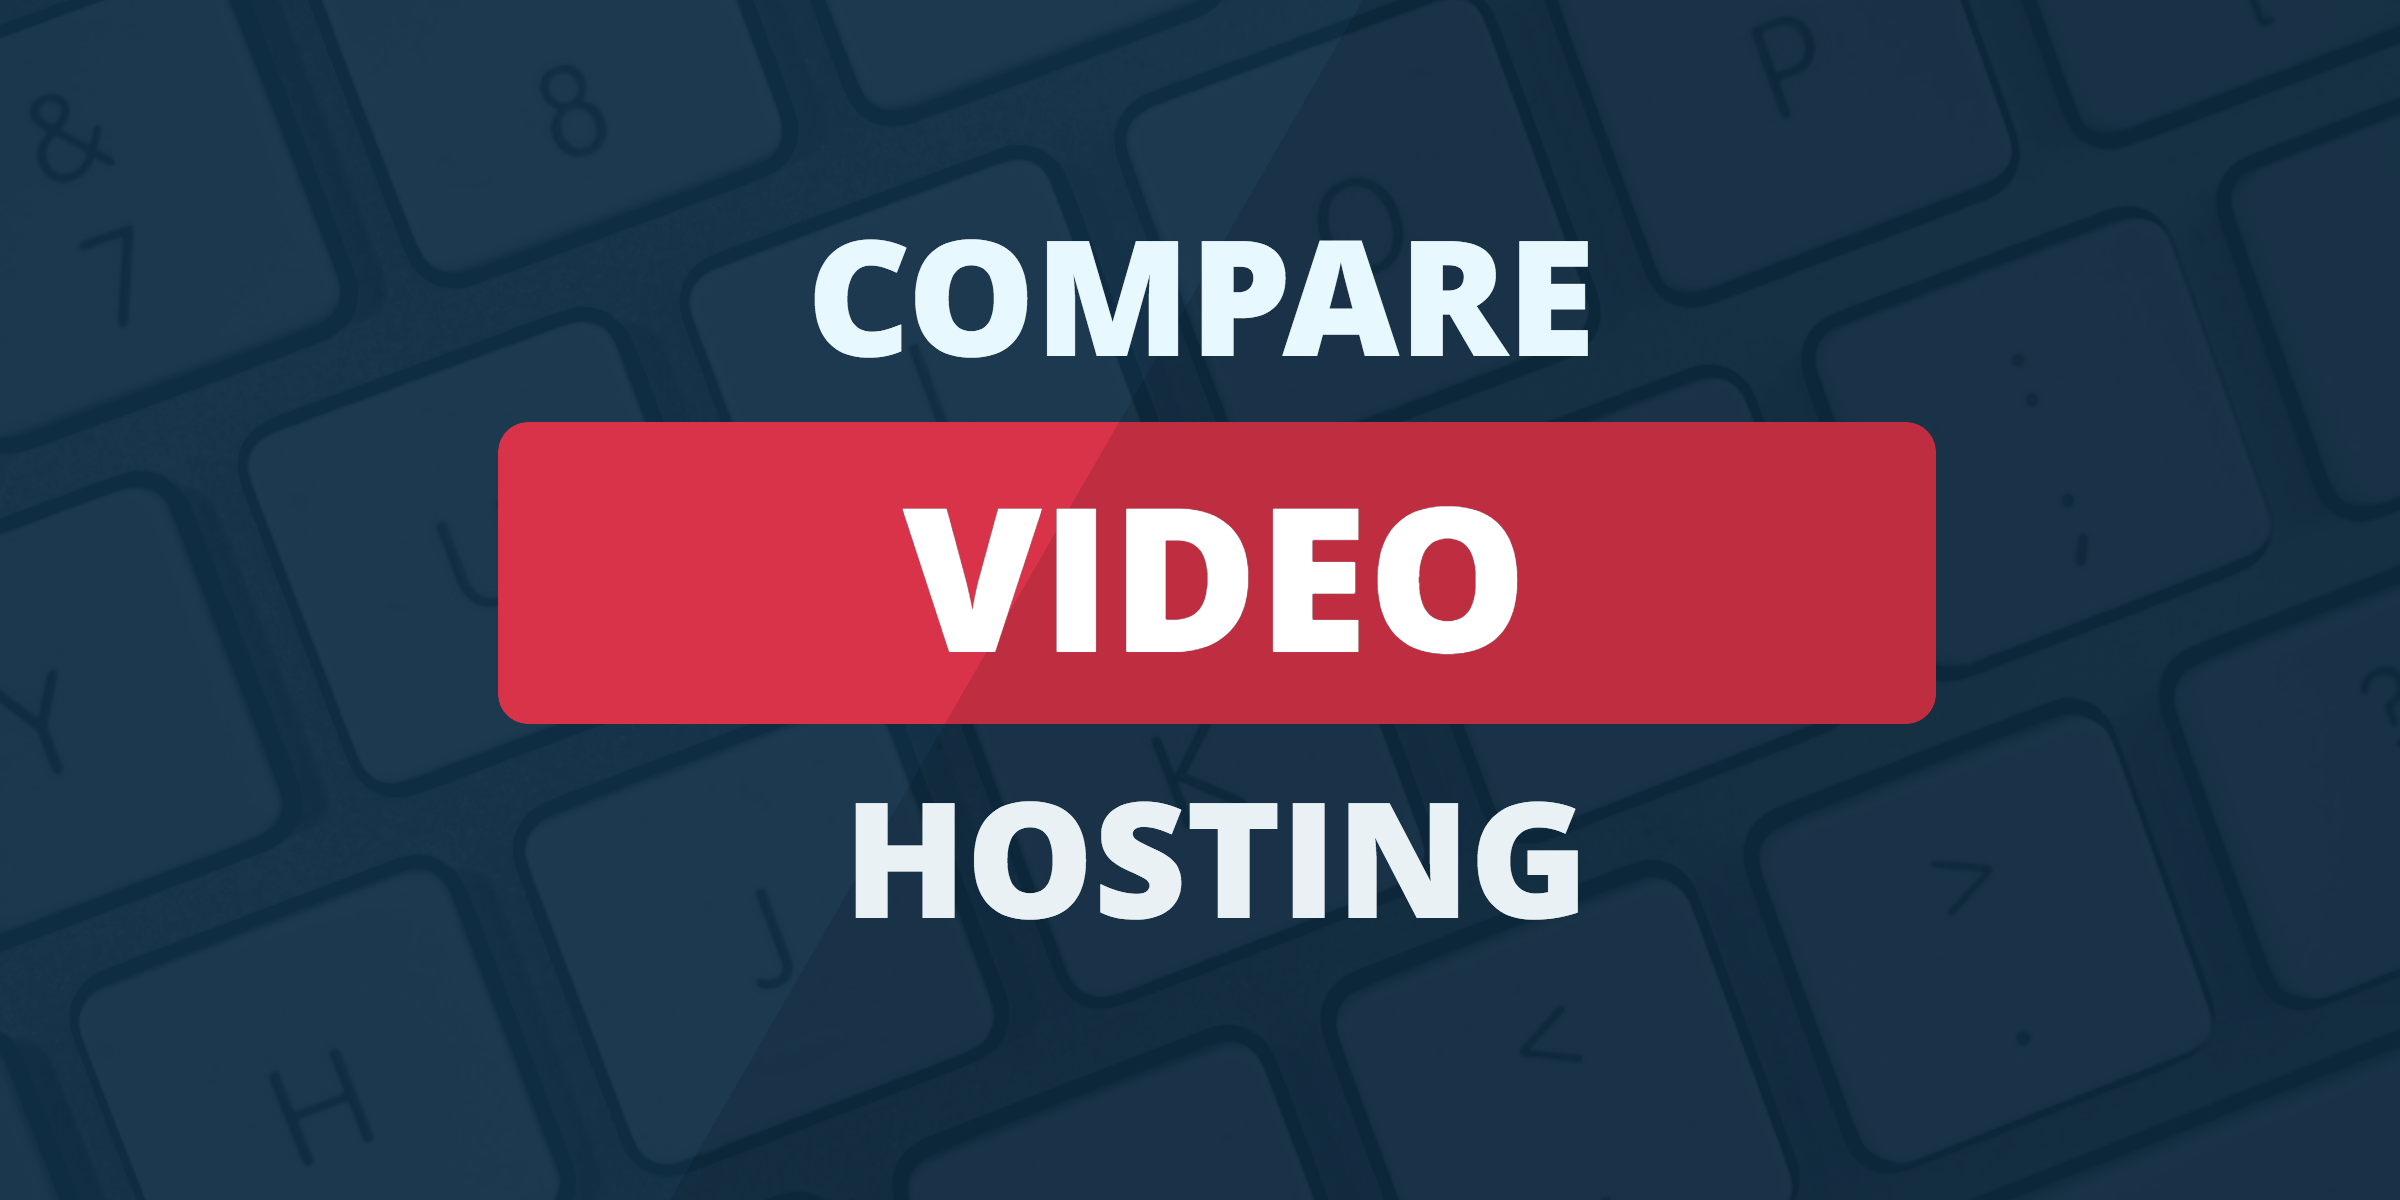 compare video hosting